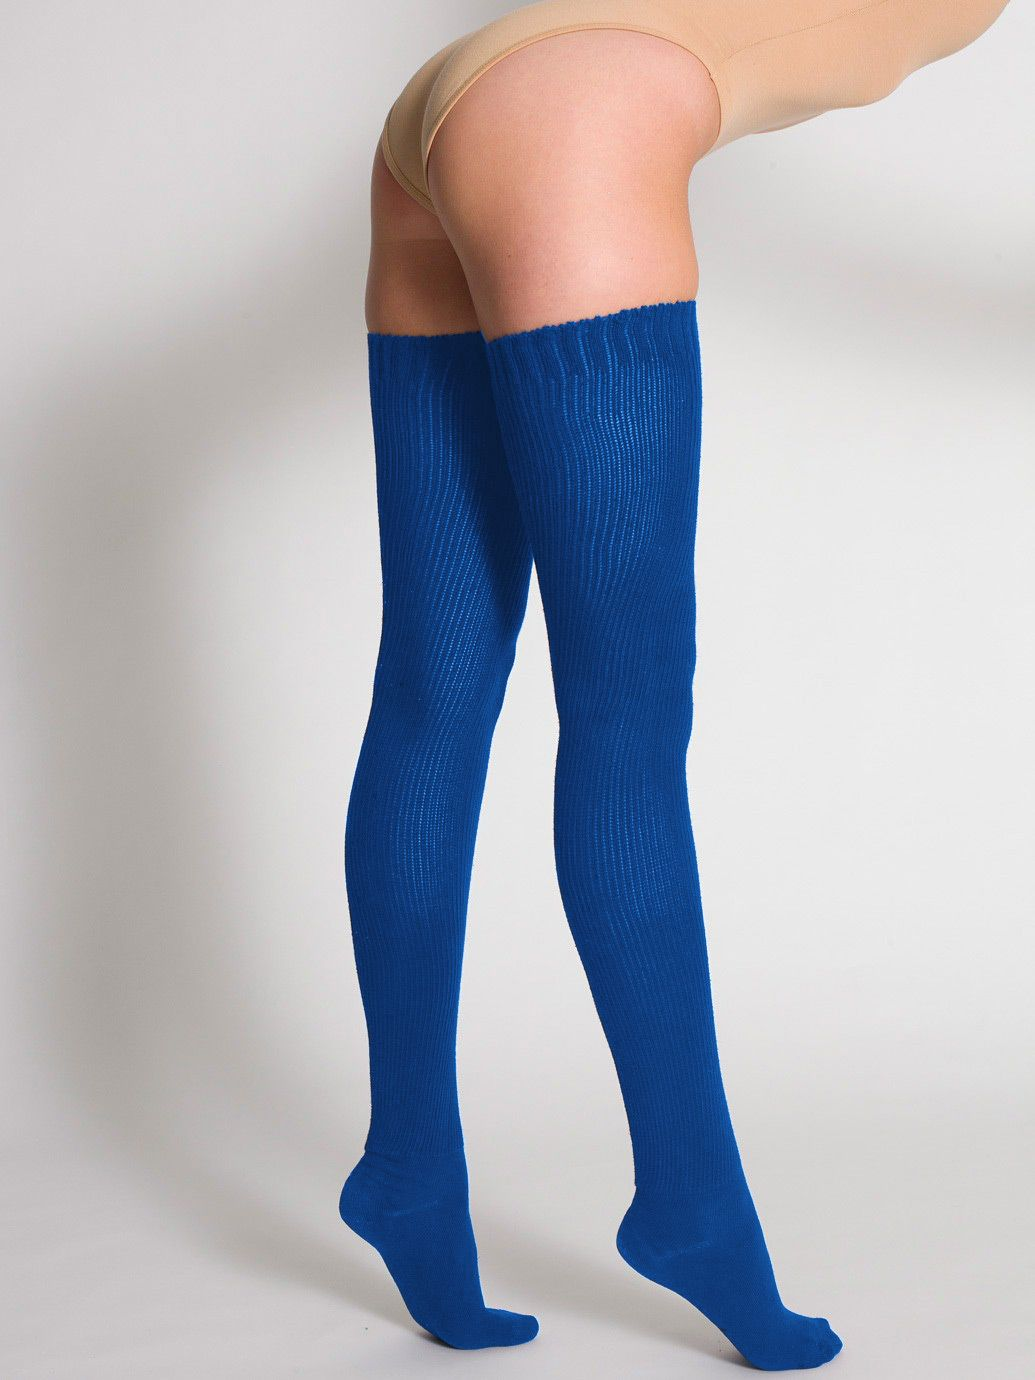 38b60ddb2 American Apparel Cotton Solid Thigh-High Socks - Evan Webster INK